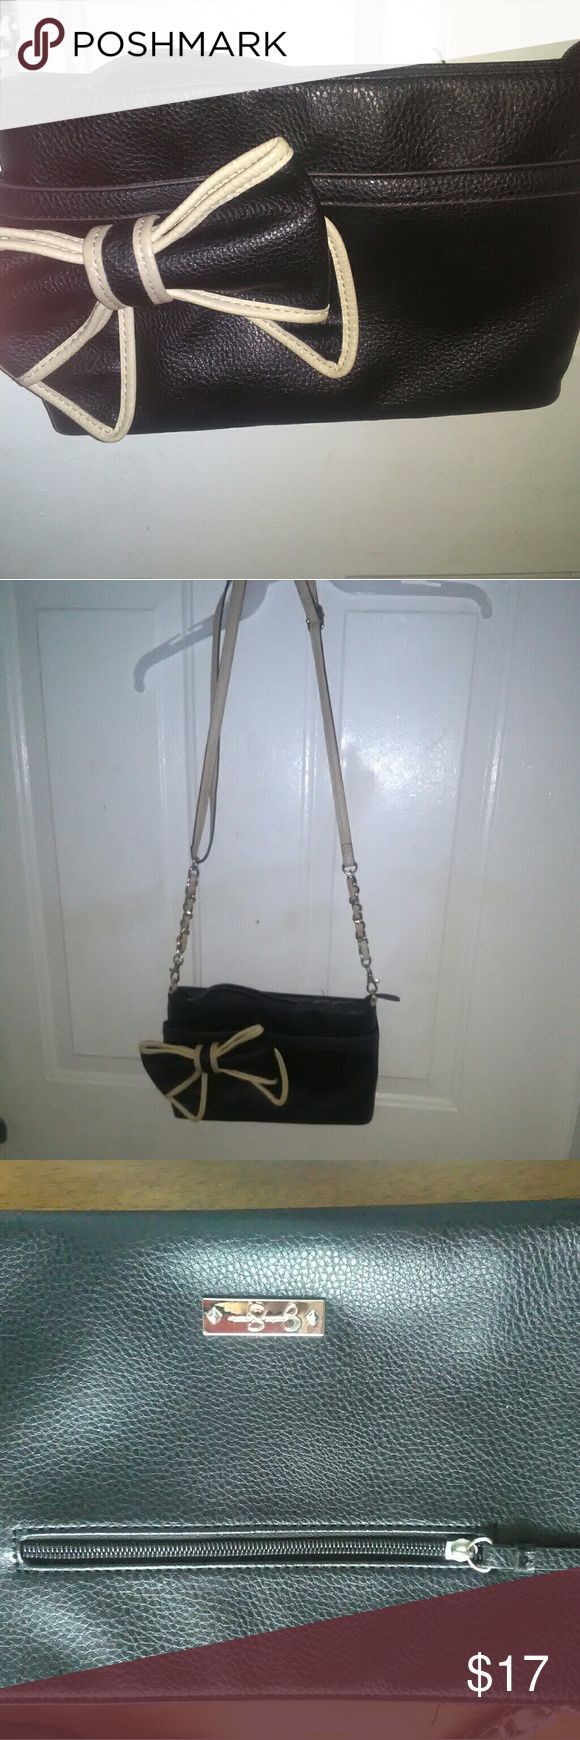 Jessica Simpson cross shoulder bag Beautiful Jessica Simpson cross shoulder bag in perfect condition Bags